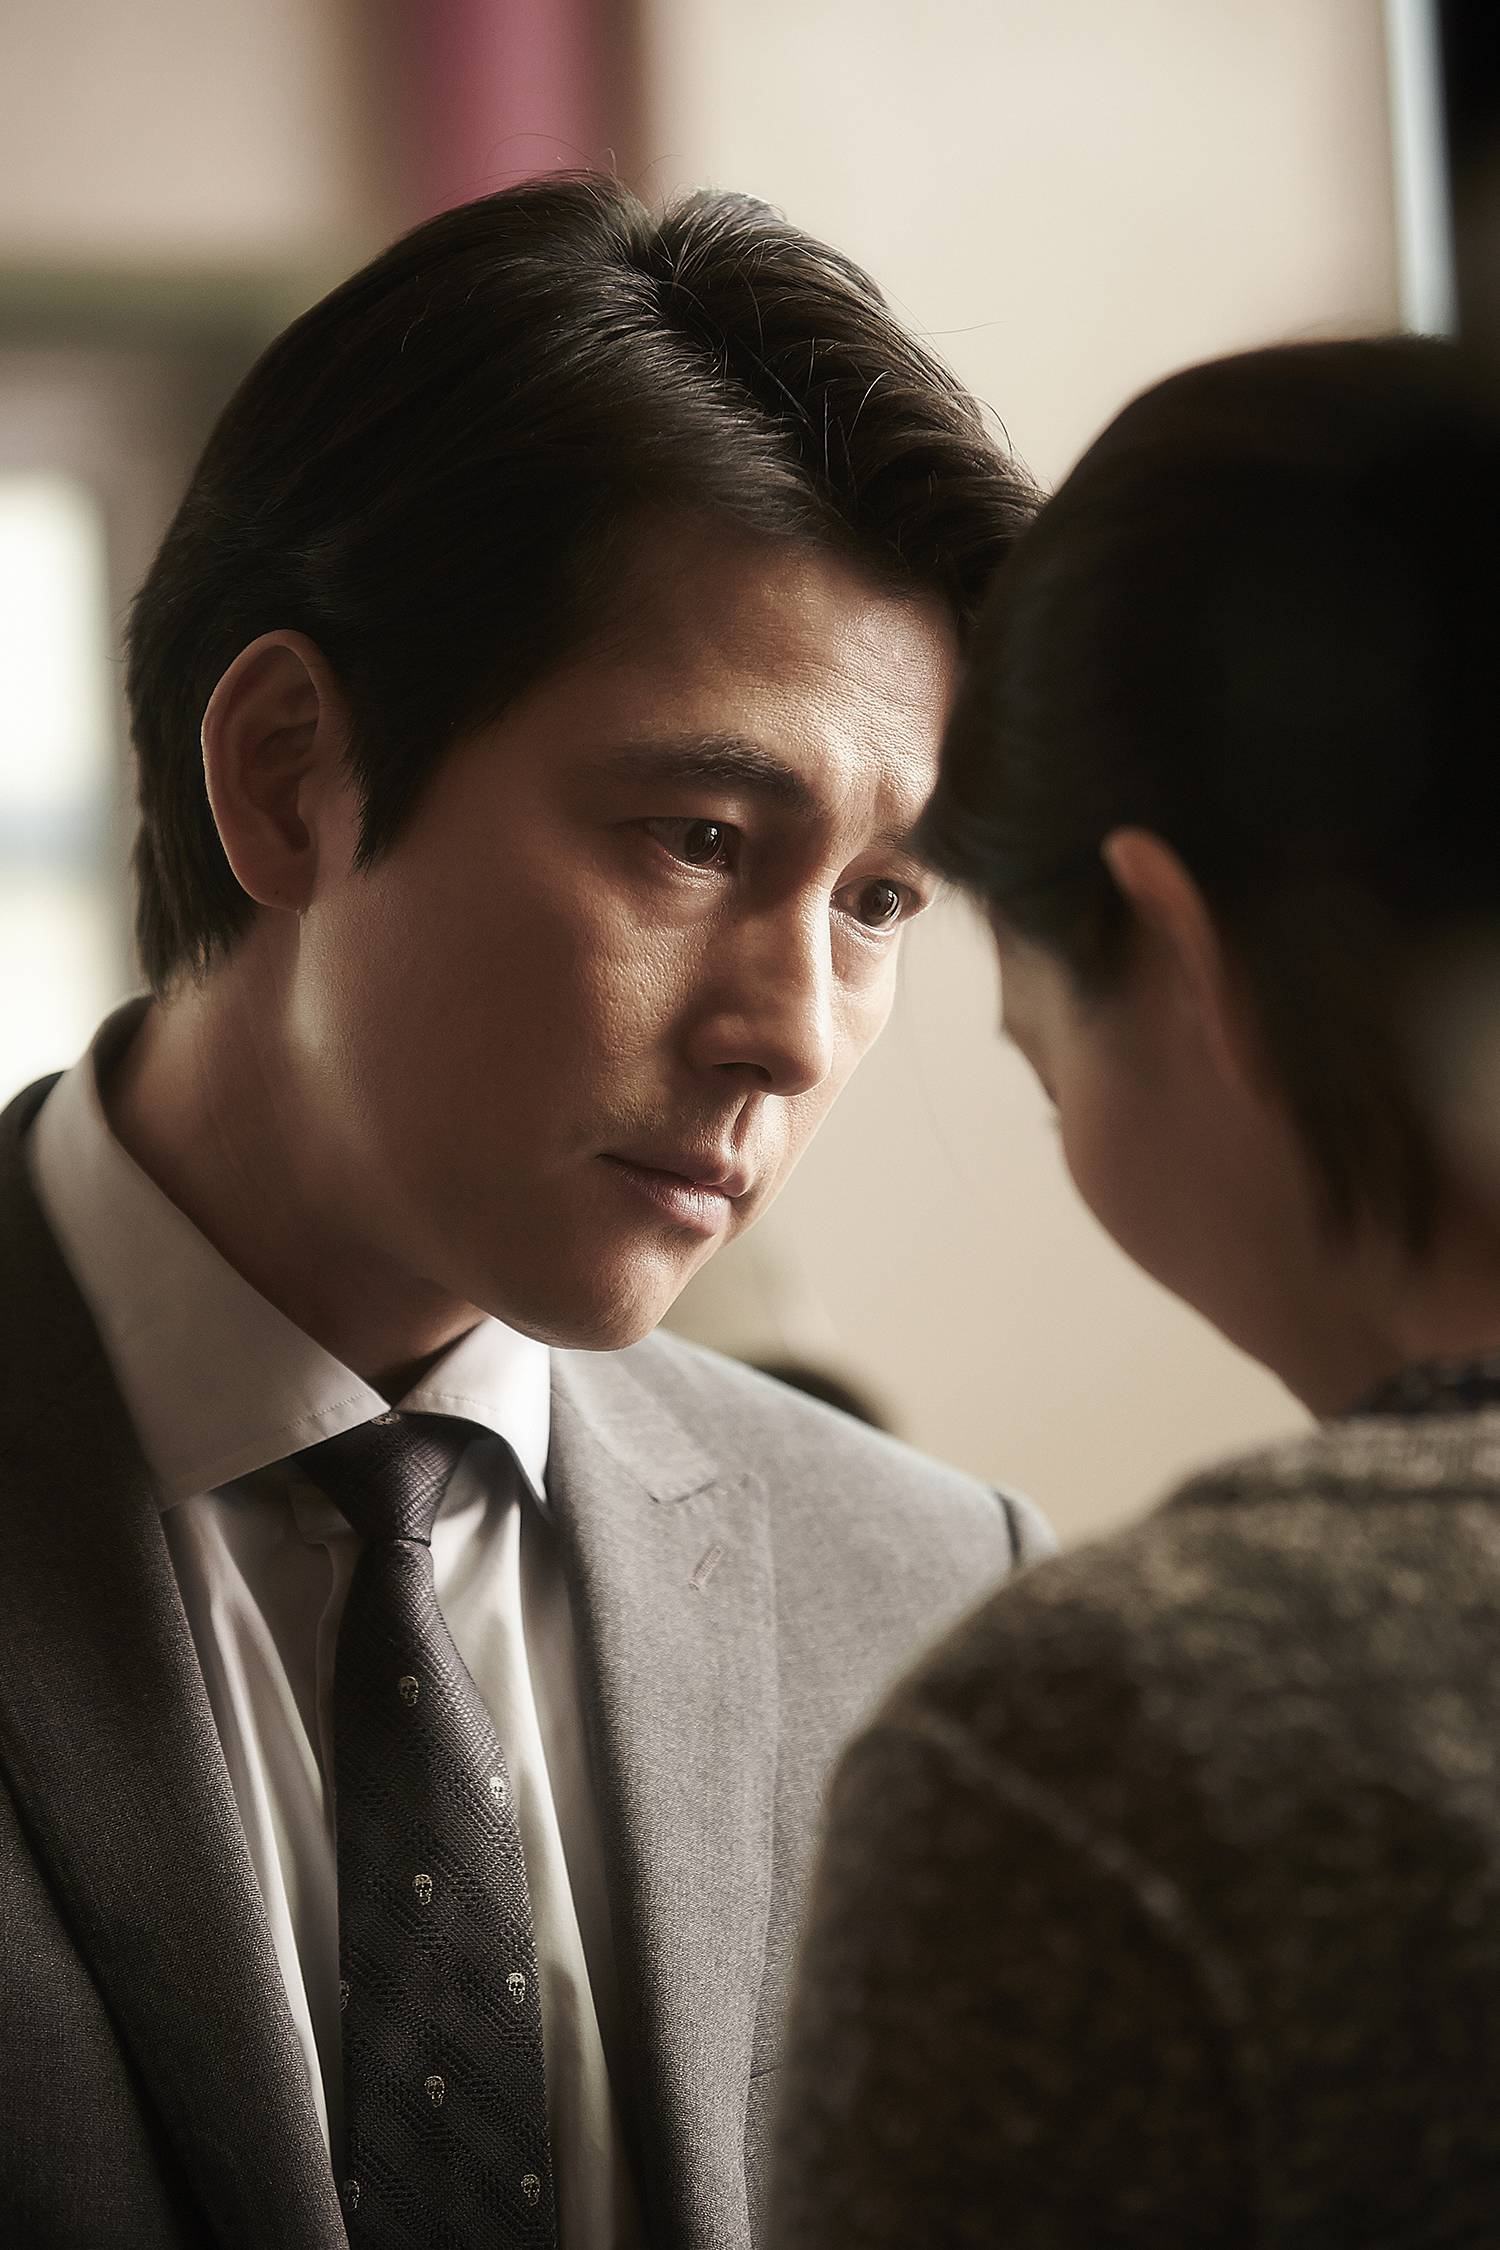 Watch Scarlet Innocence online in HD quality and free on